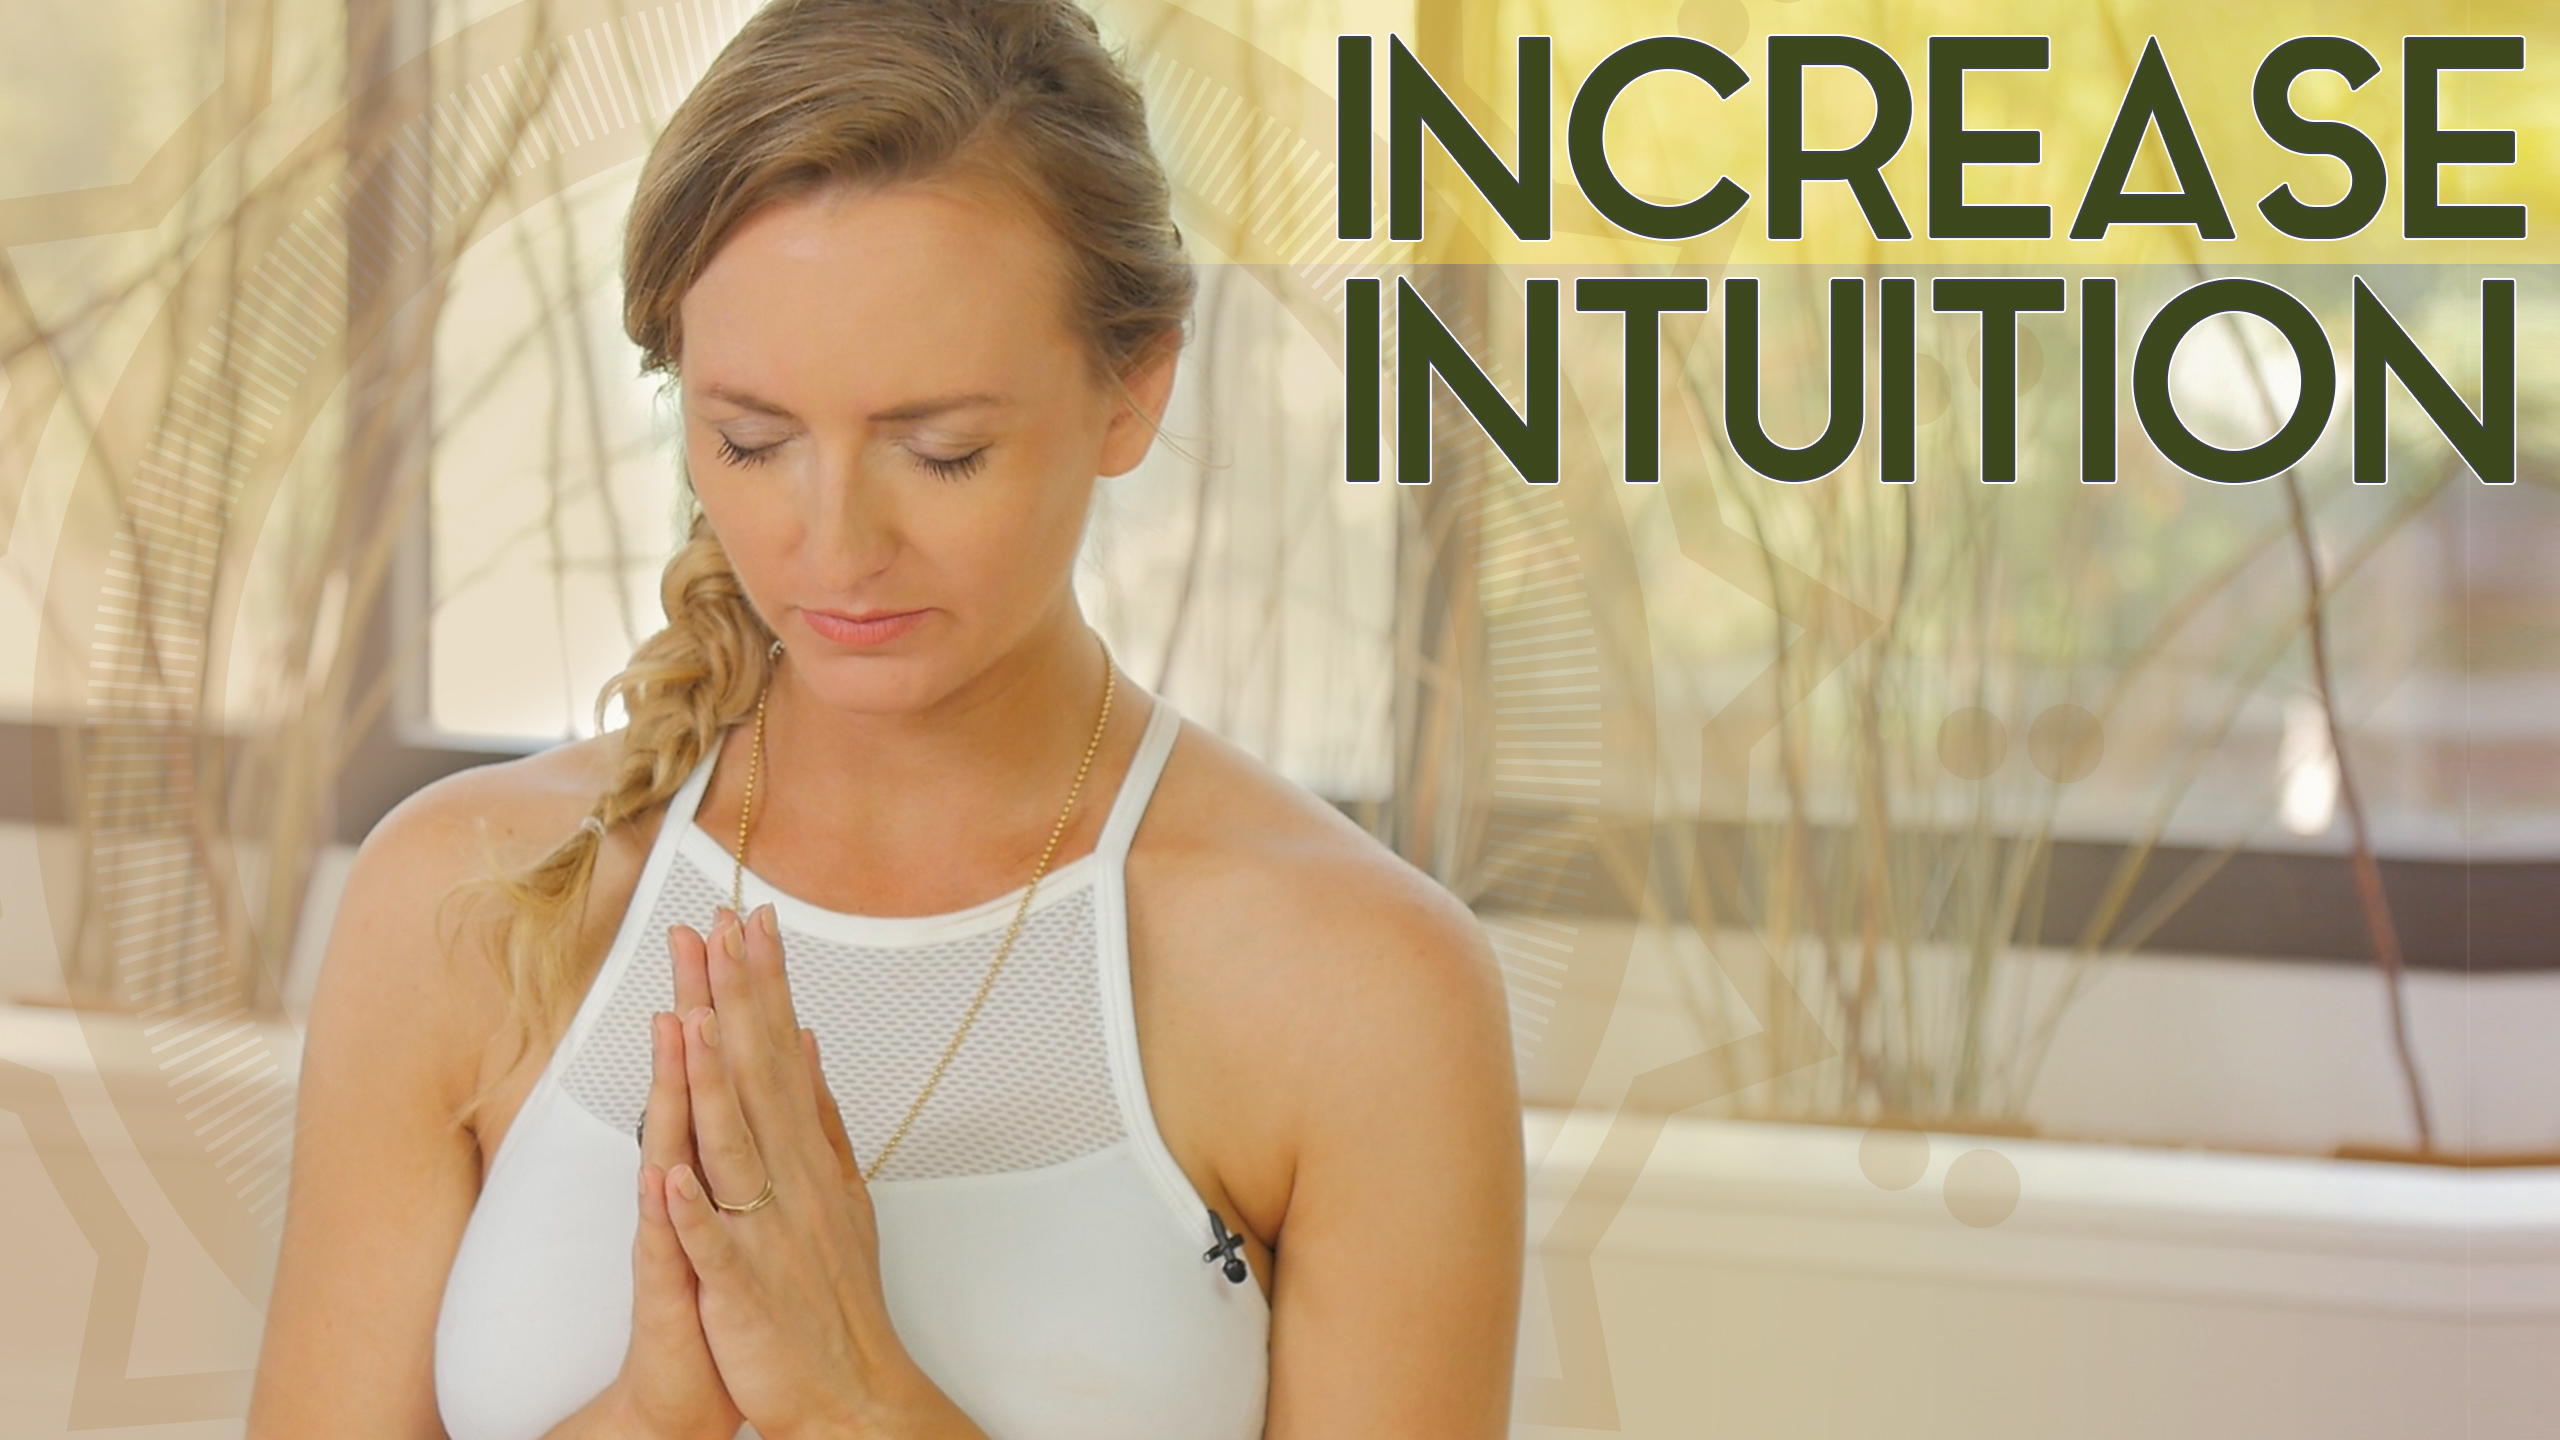 Do You Want to Improve Your Intuition? Here's How!